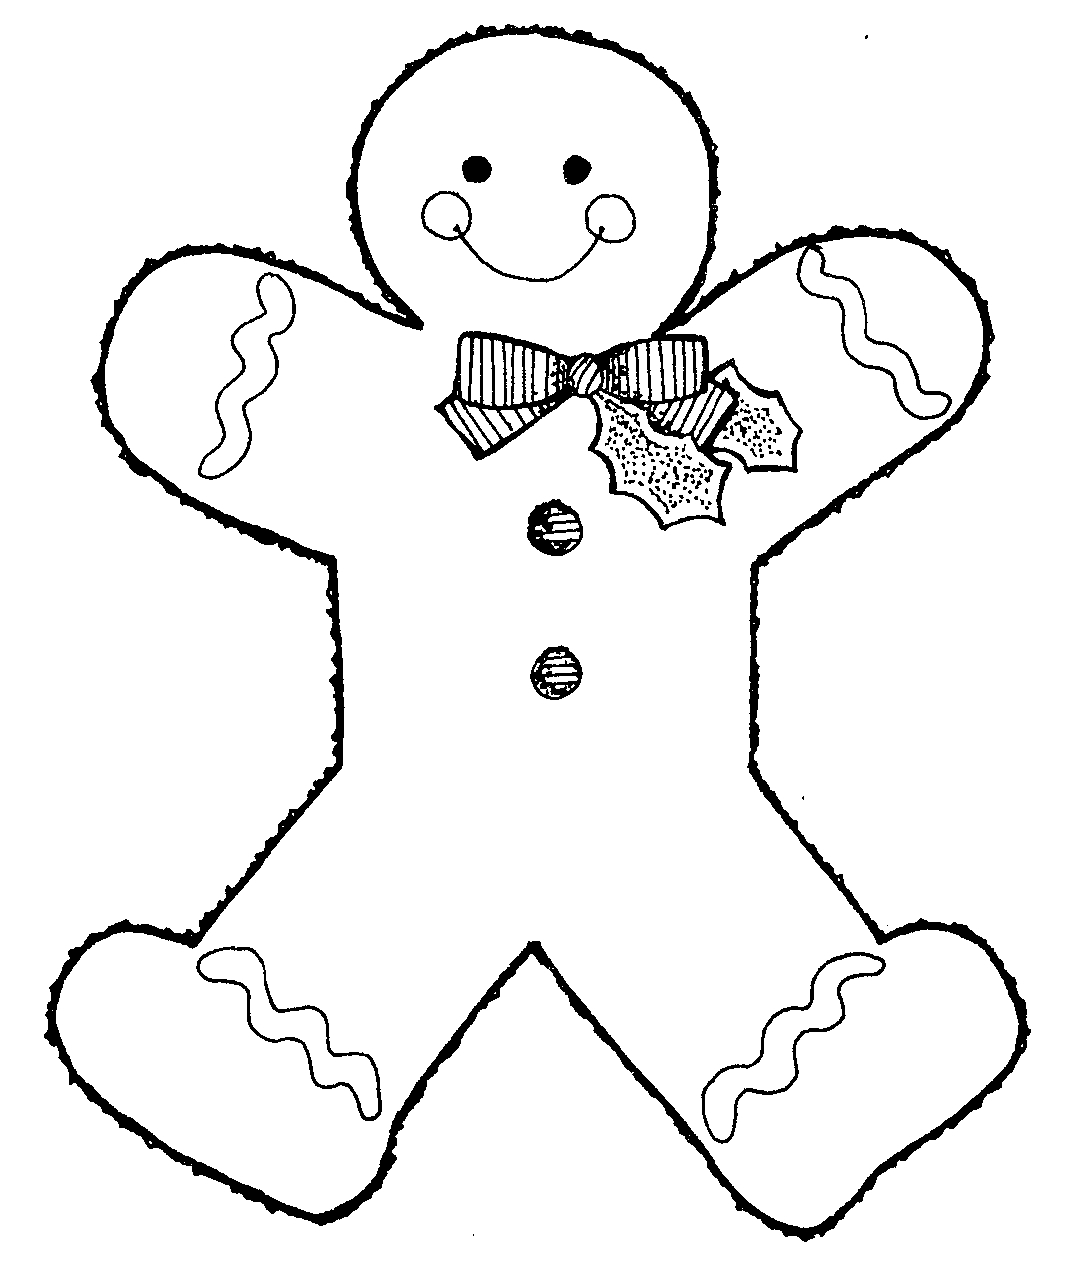 the gingerbread man template gingerbread man template clipart coloring page for kids gingerbread man the template